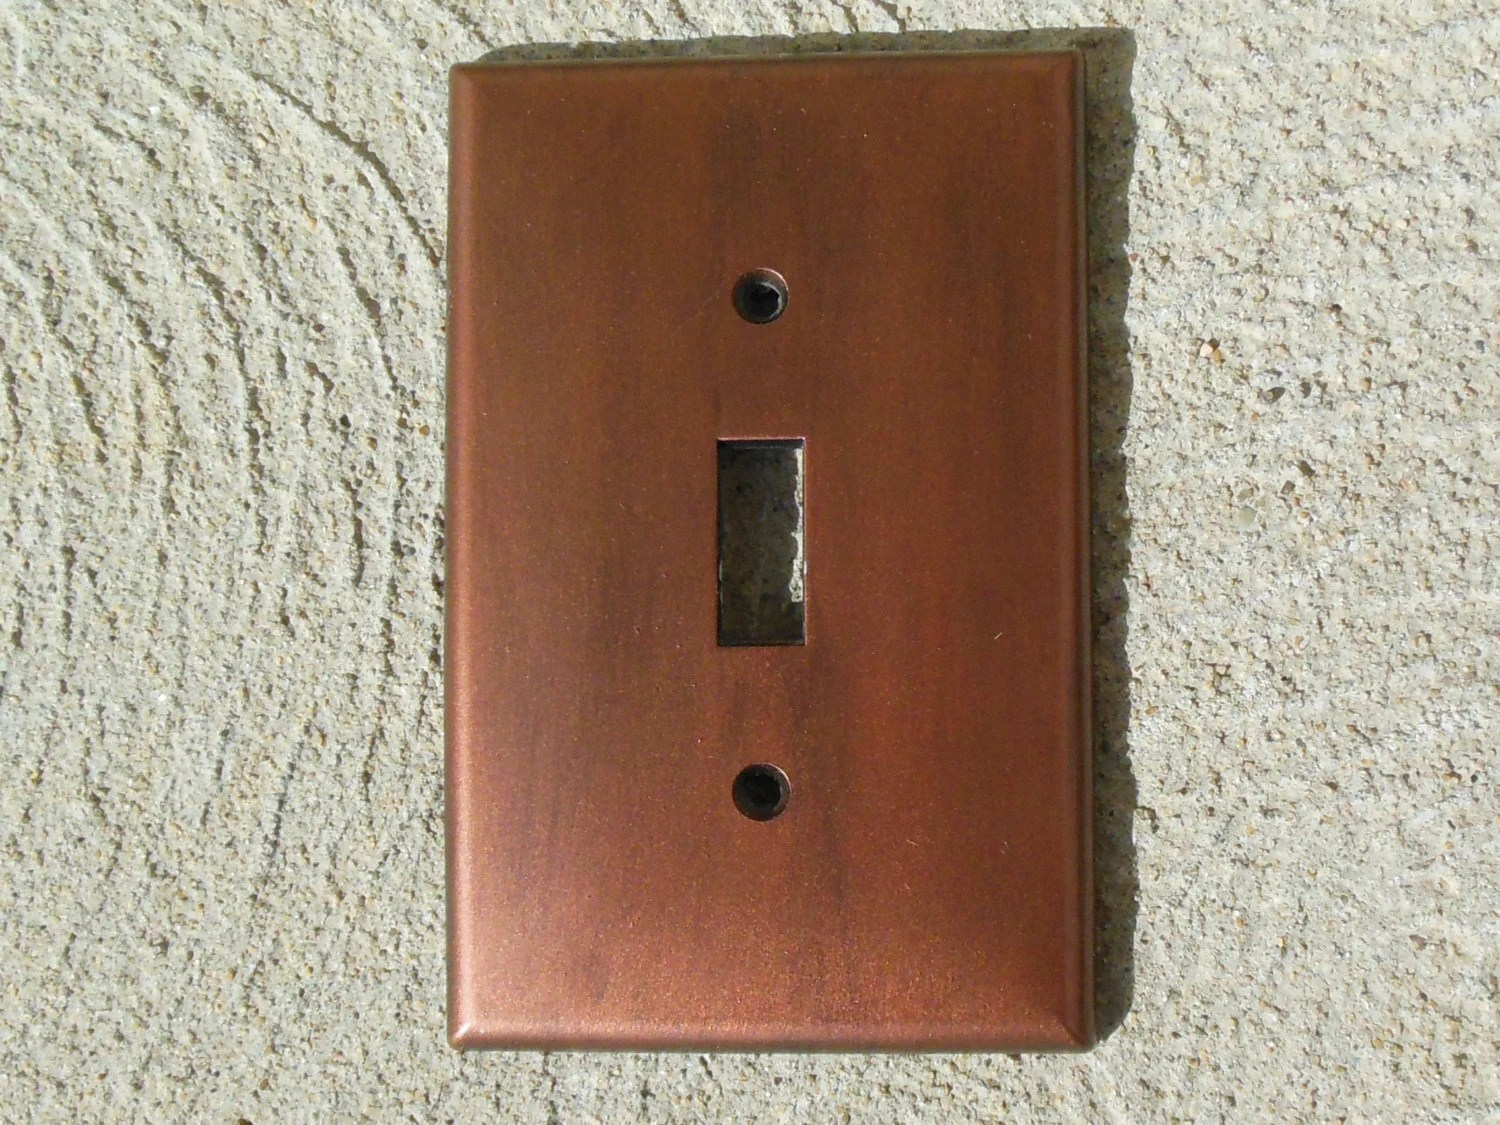 Copper Light Switch Plates Antiqued Copper Light Switch Plate Cover